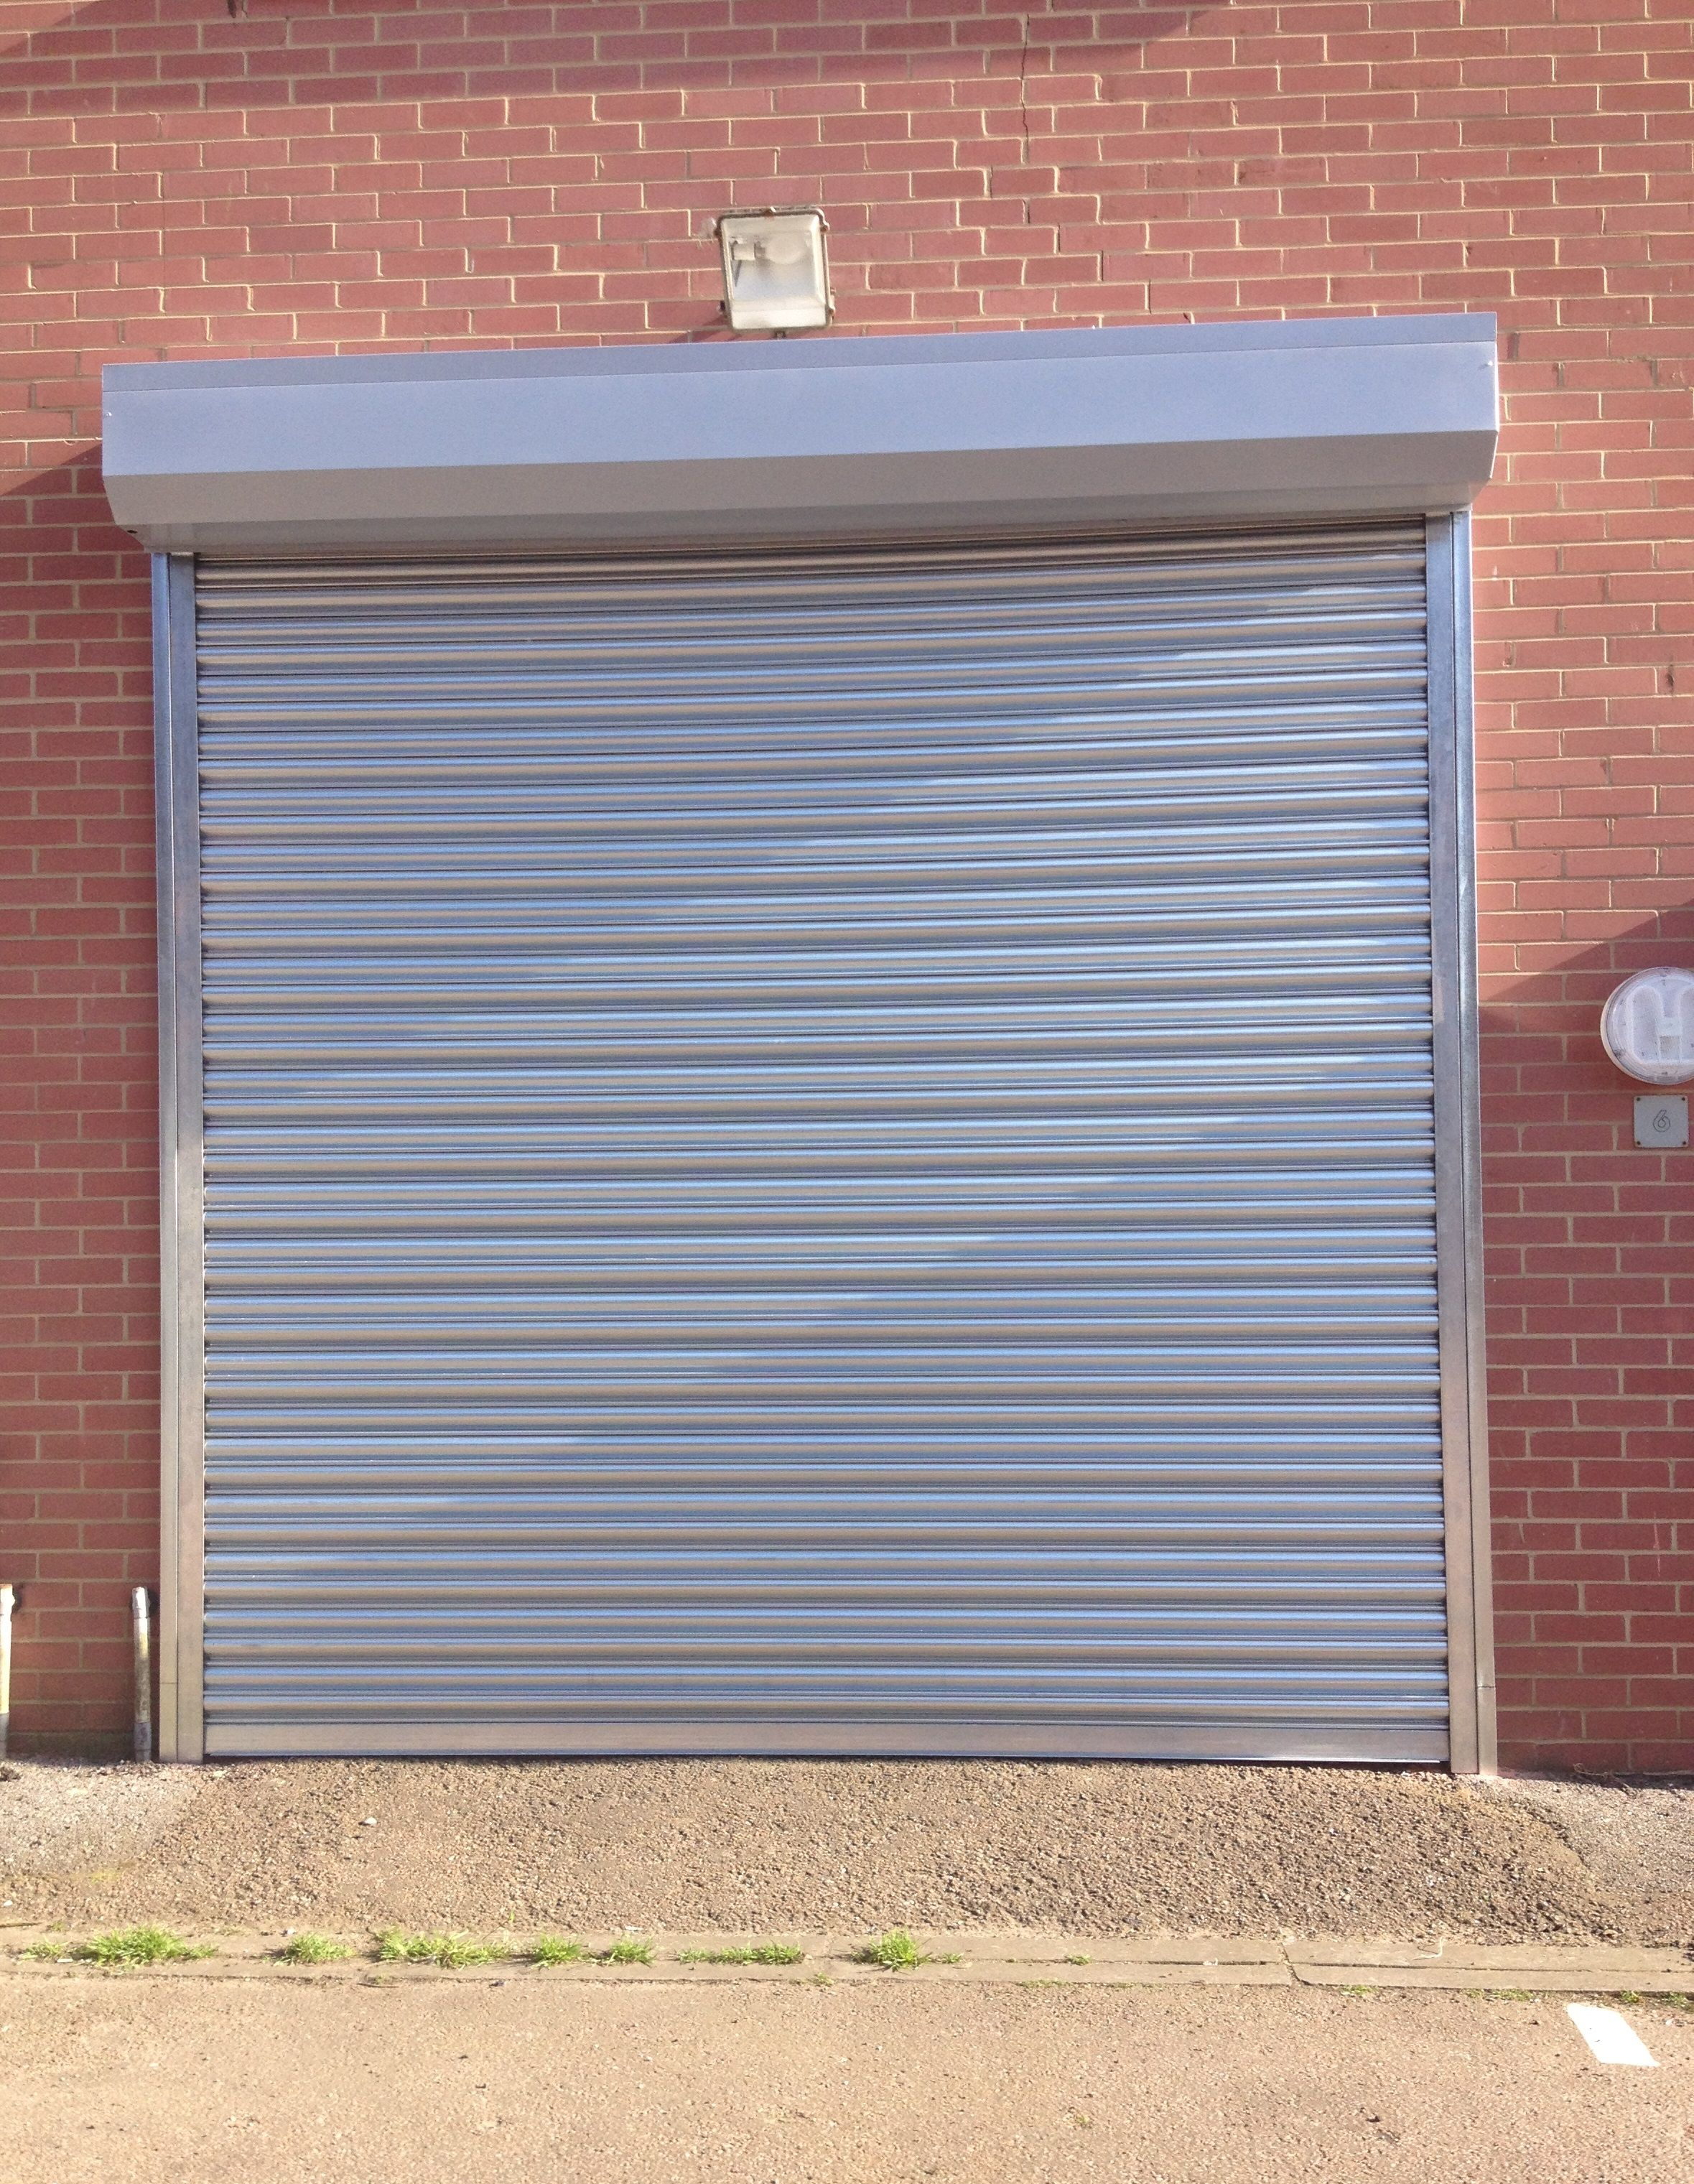 Owner Satisfied With Our Rsg5000 Galvanised Steel Security Roller Shutter Fitted Externally To The Opening Of His Commer Roller Shutters Shutters Shutter Doors